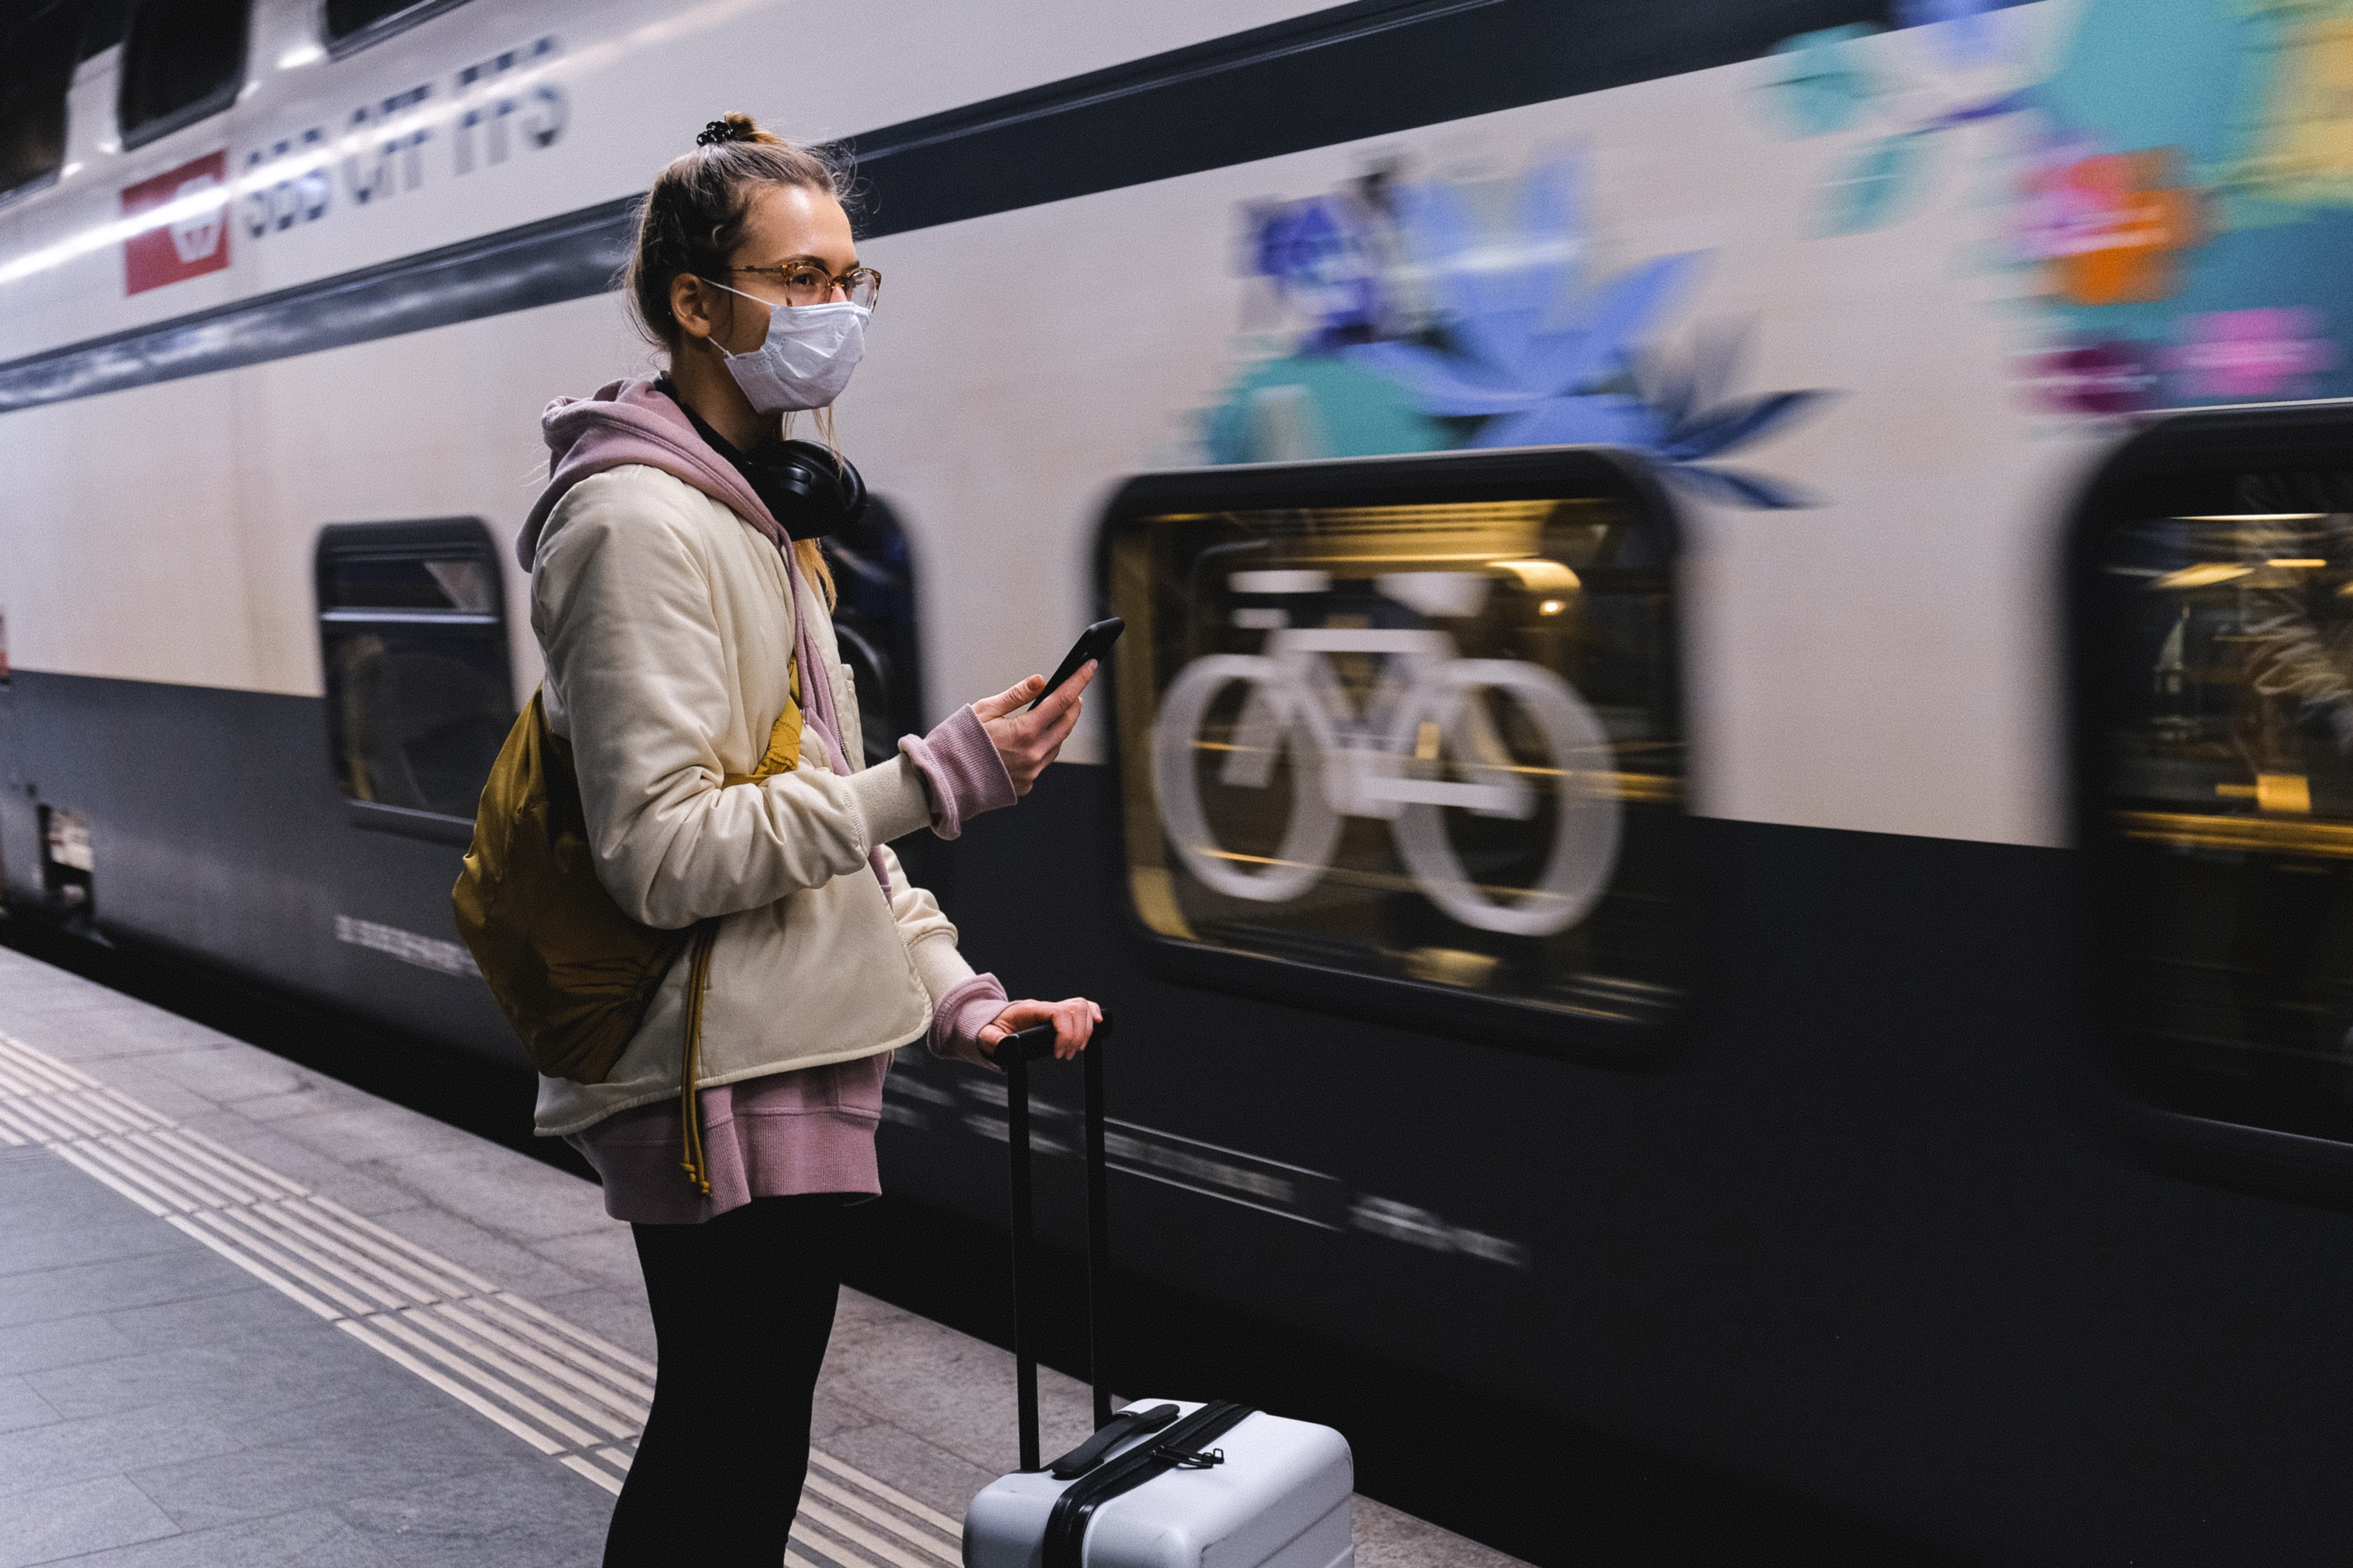 A girl with face mask standing in front of a moving train